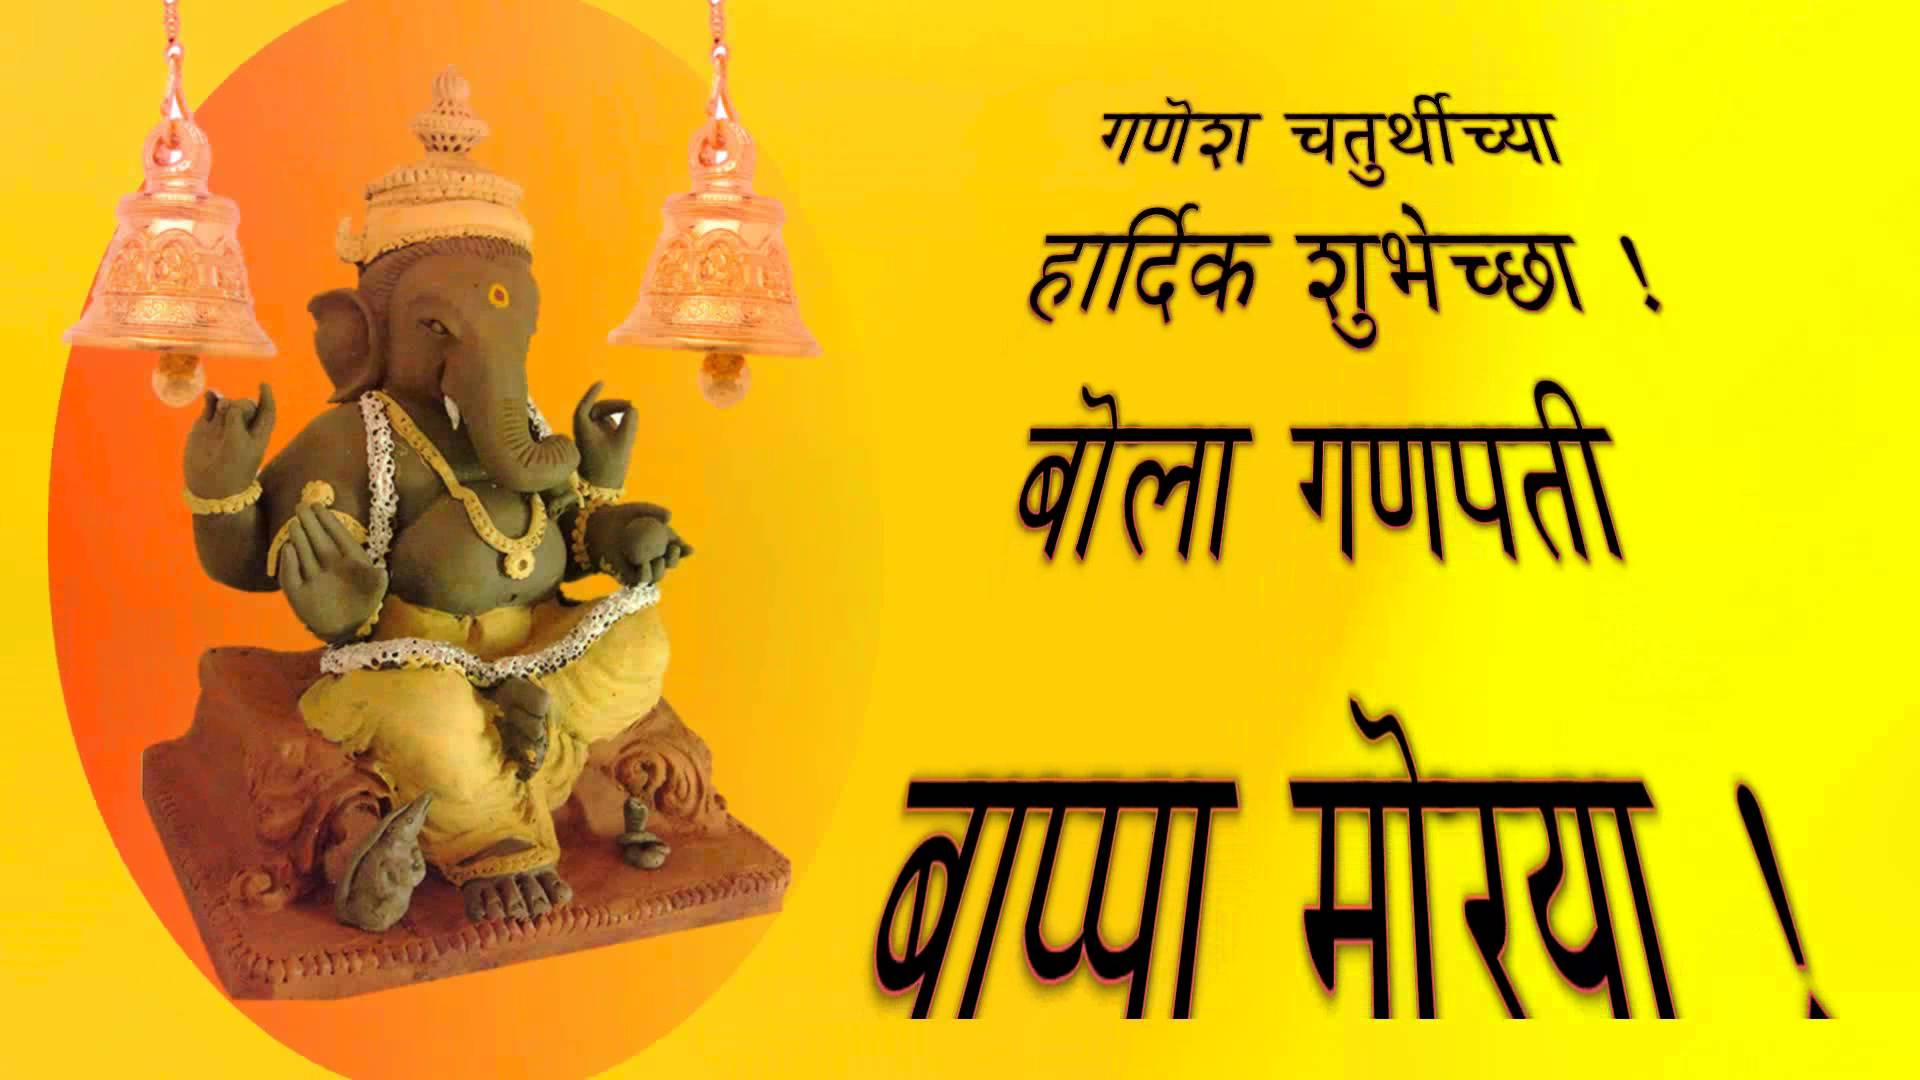 Ganesh Chaturthi 2016 Messages in Marathi